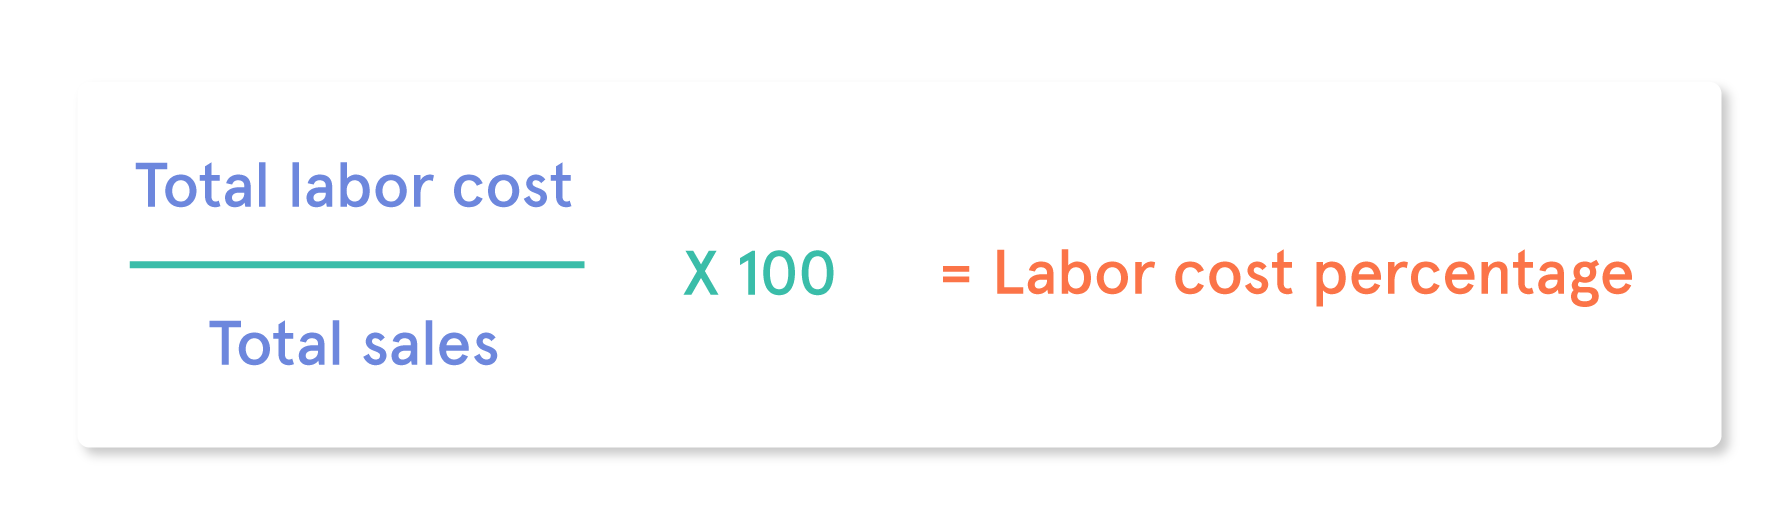 Labor cost percentage calculation formula and example